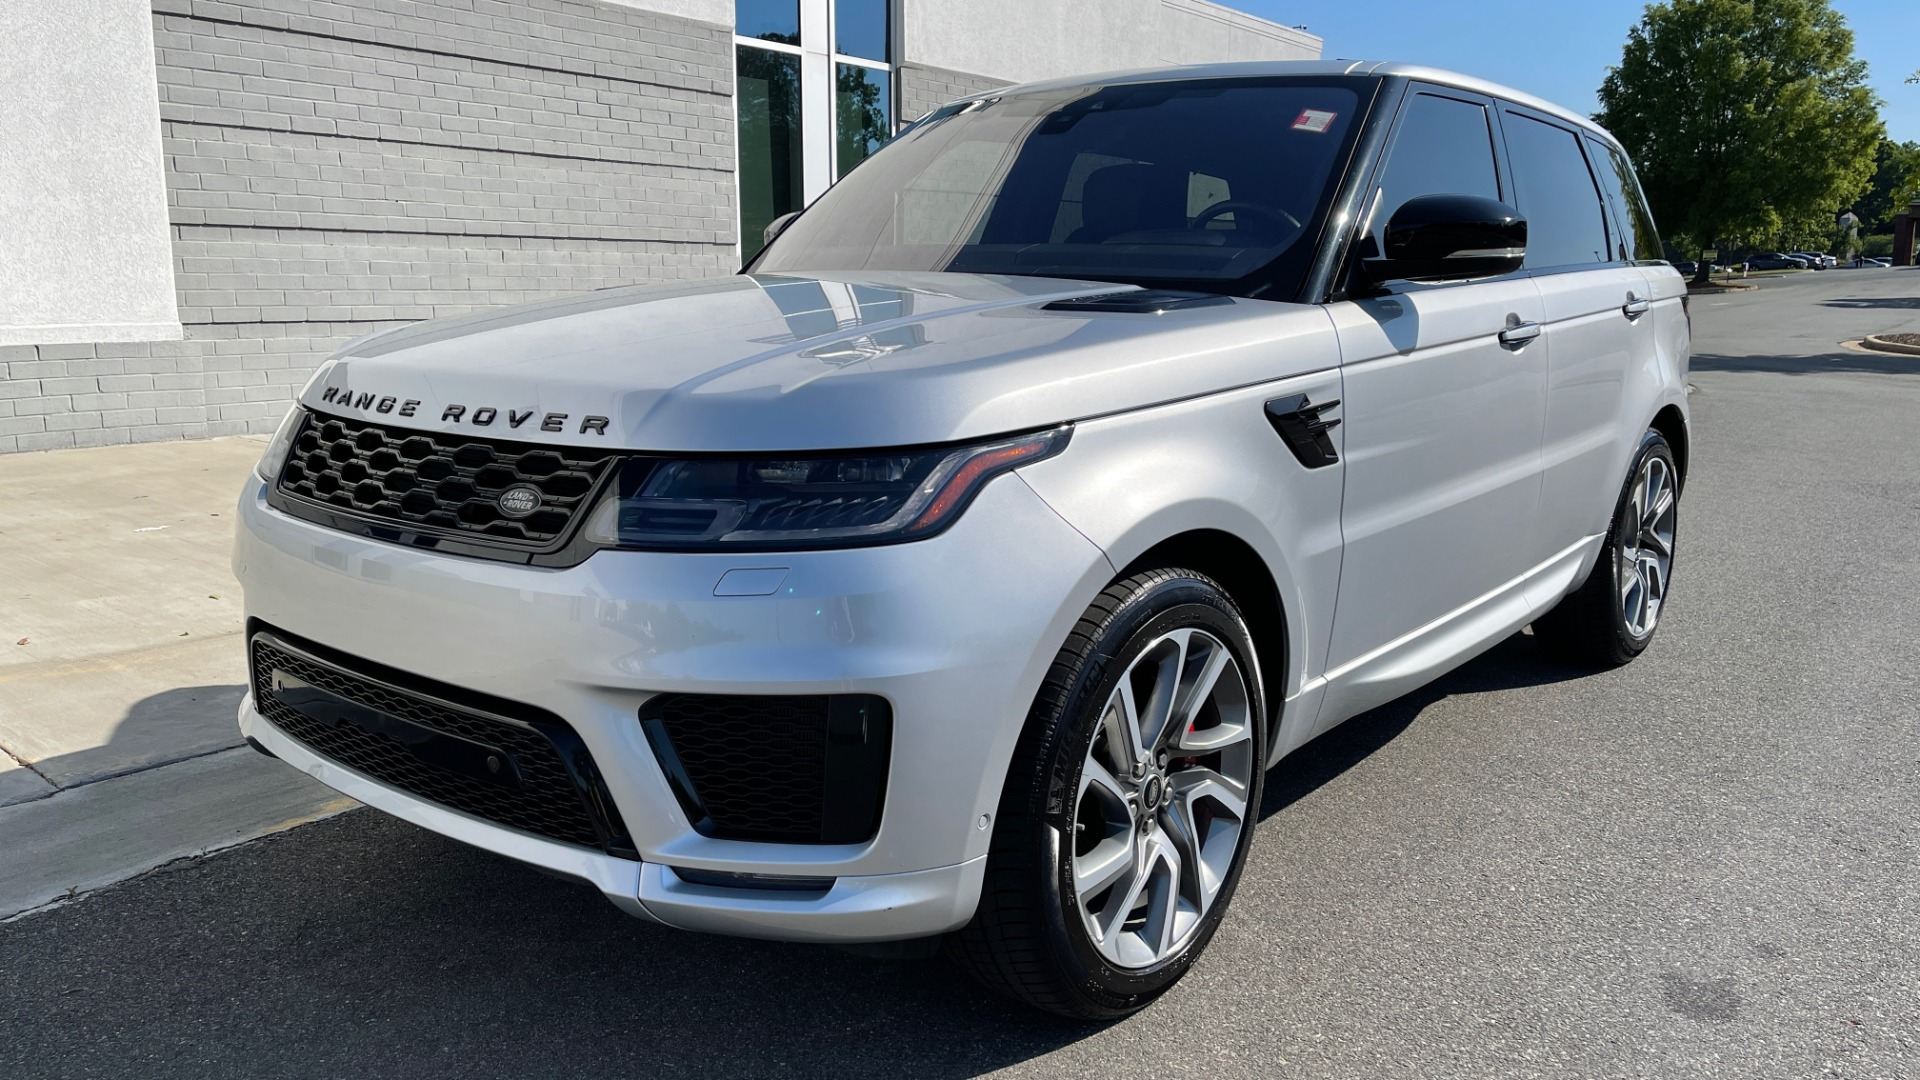 Used 2019 Land Rover Range Rover Sport HSE Dynamic for sale Sold at Formula Imports in Charlotte NC 28227 4